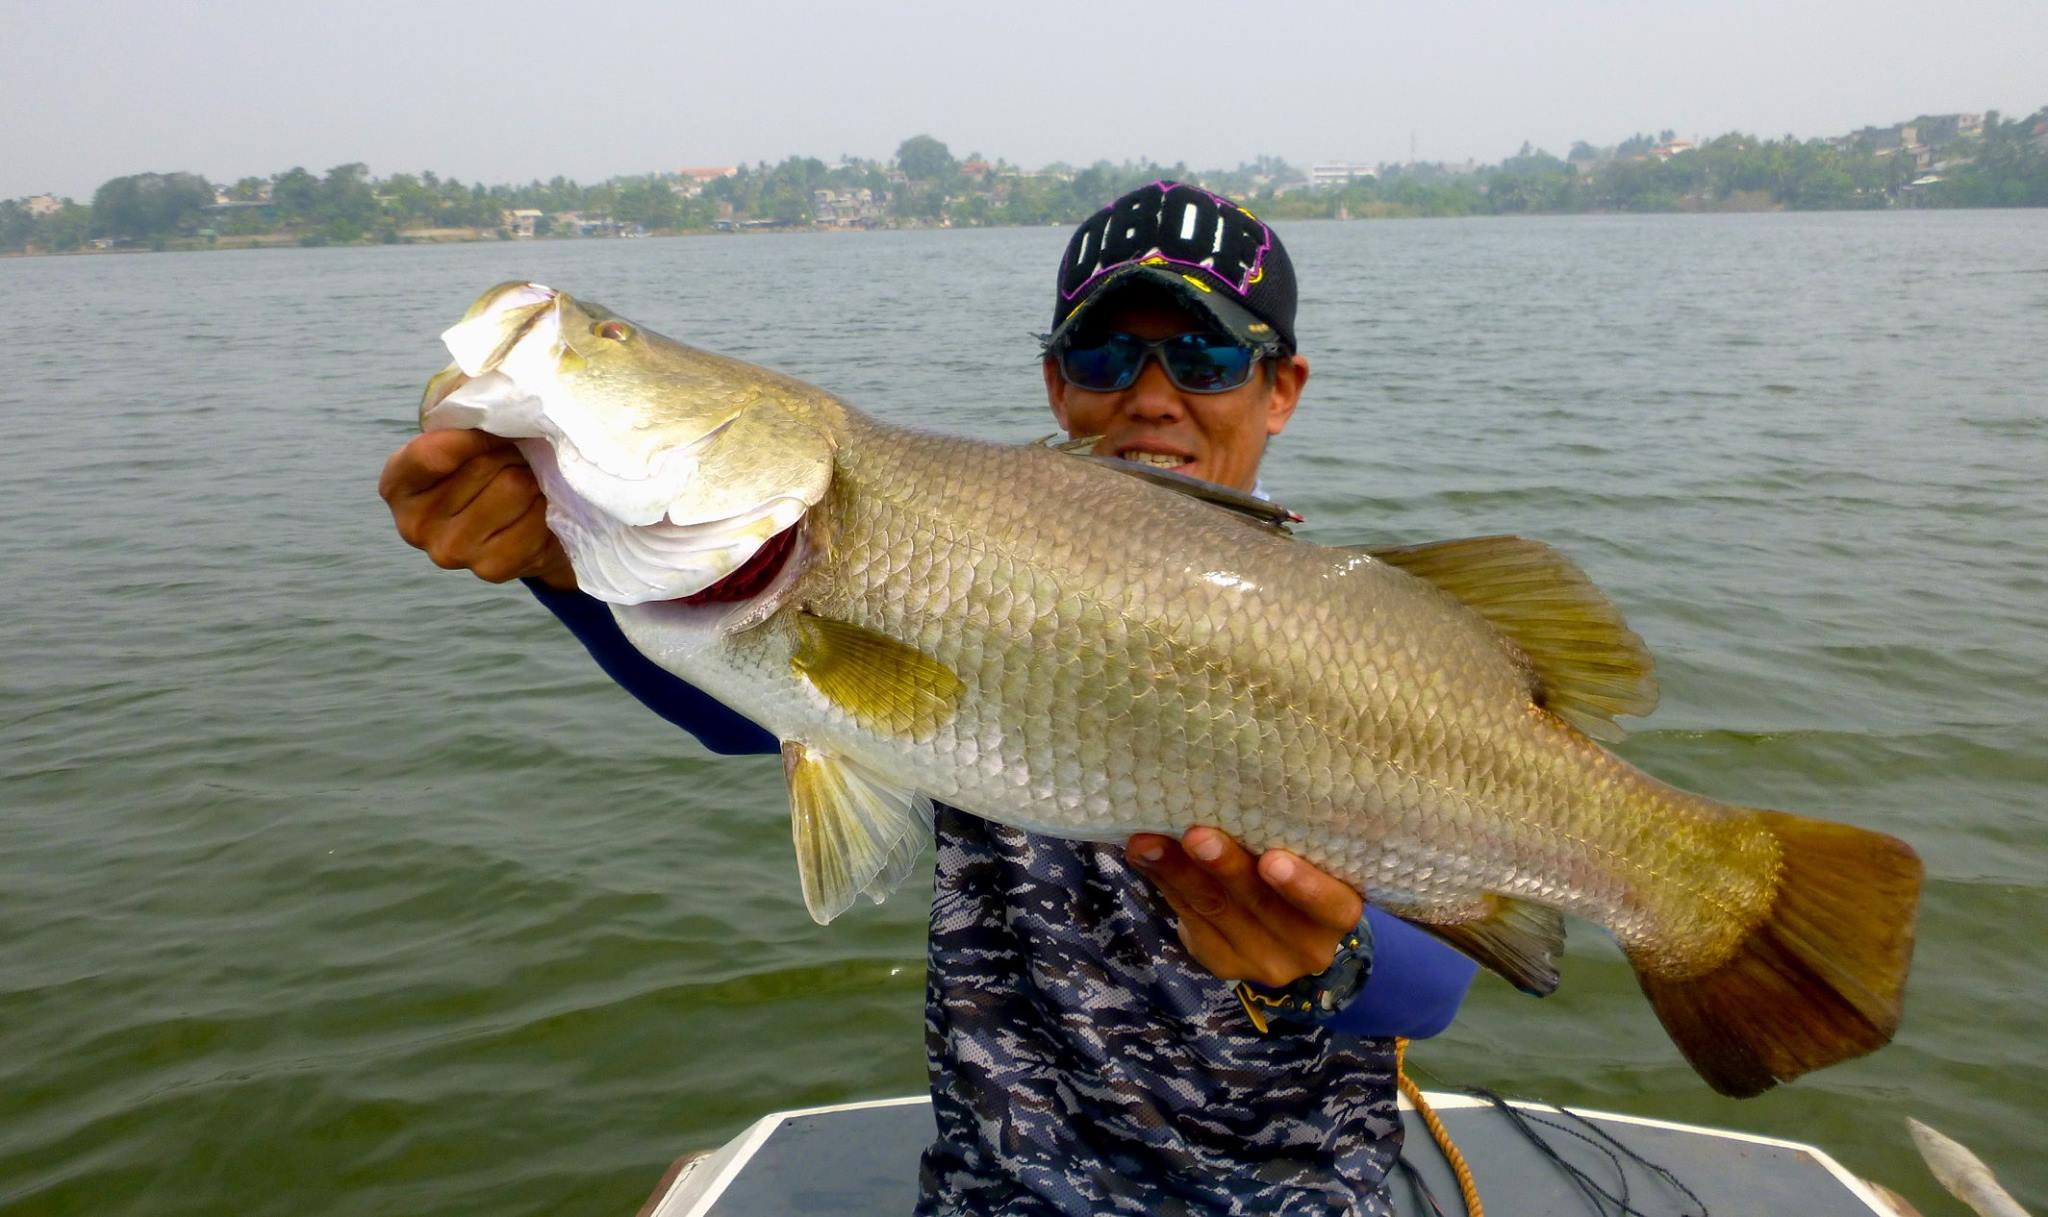 Barramundi fishing tour sri lanka Bolgoda Lake Sportfishing Lanka.jpg